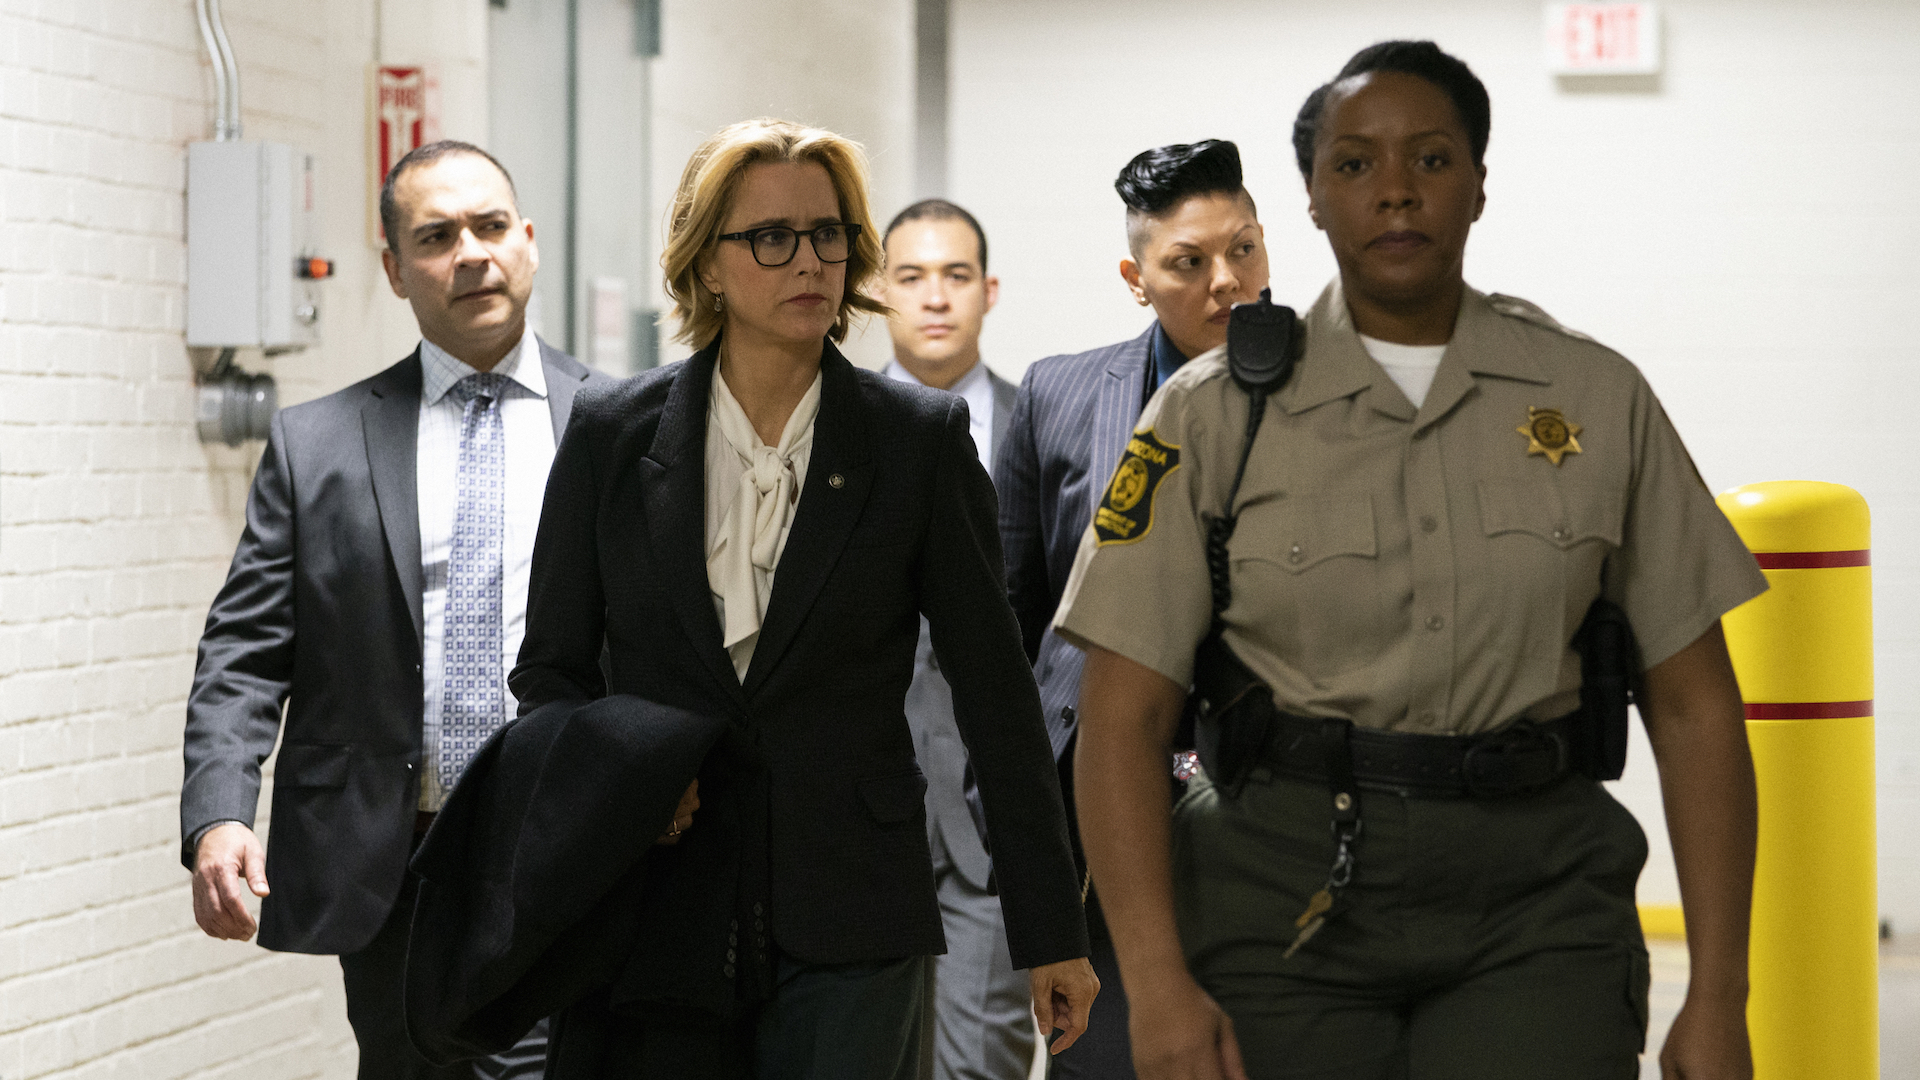 Madam Secretary marks 100 episodes with the special two-part episode